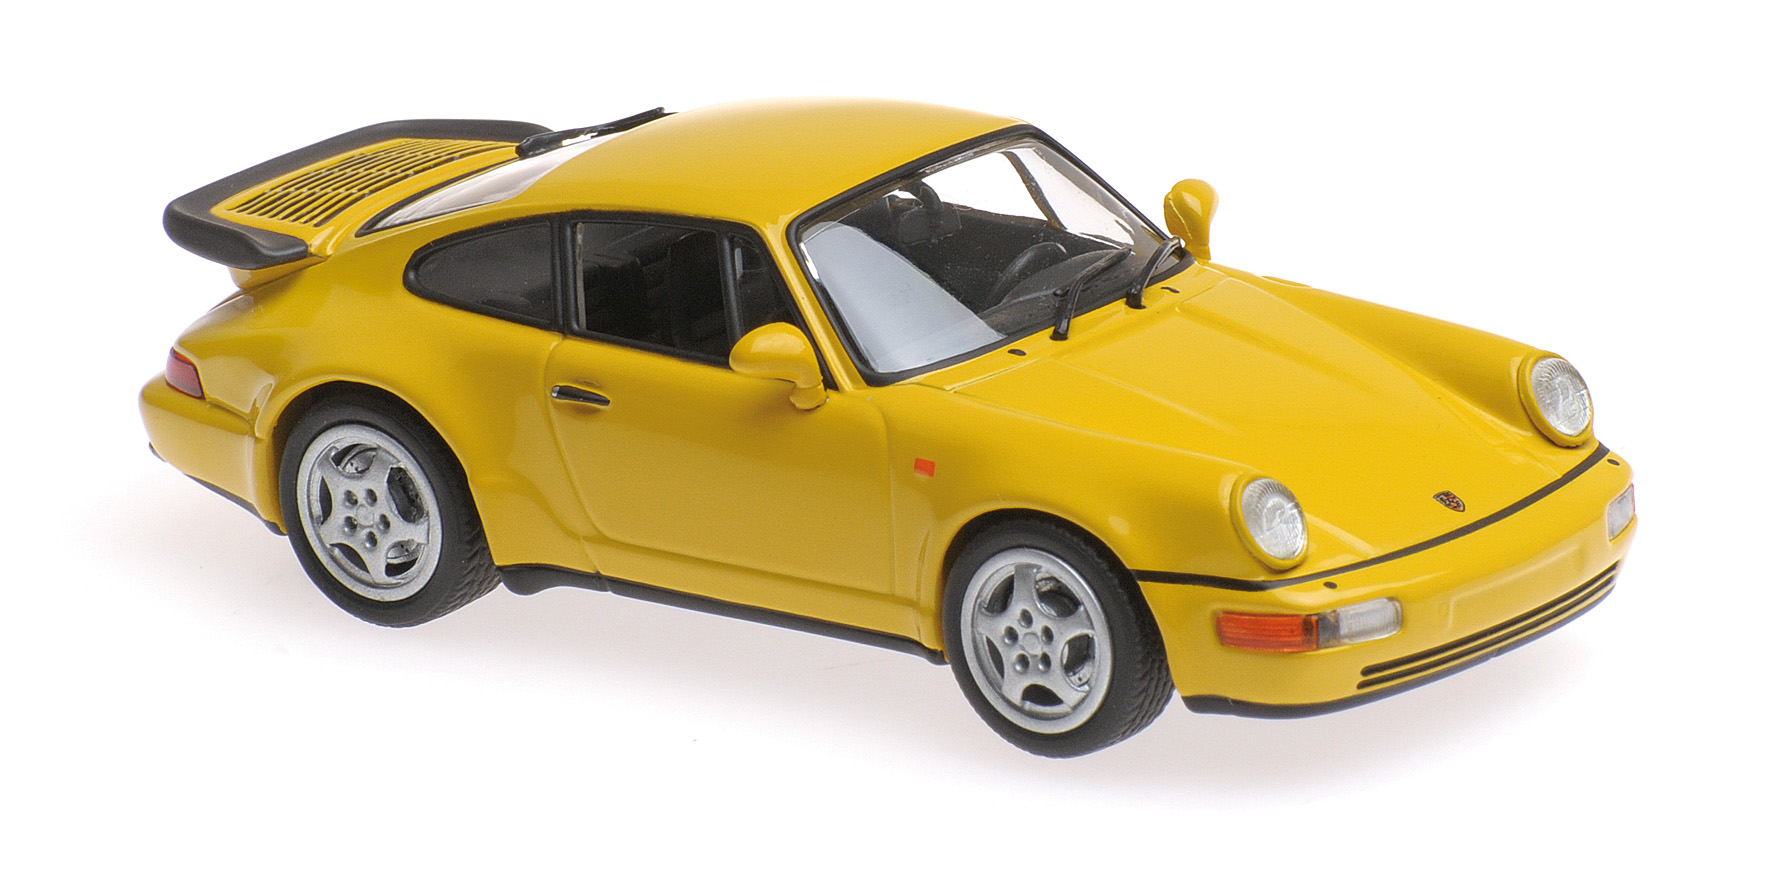 Porsche 911 (964) Turbo 1990 Geel